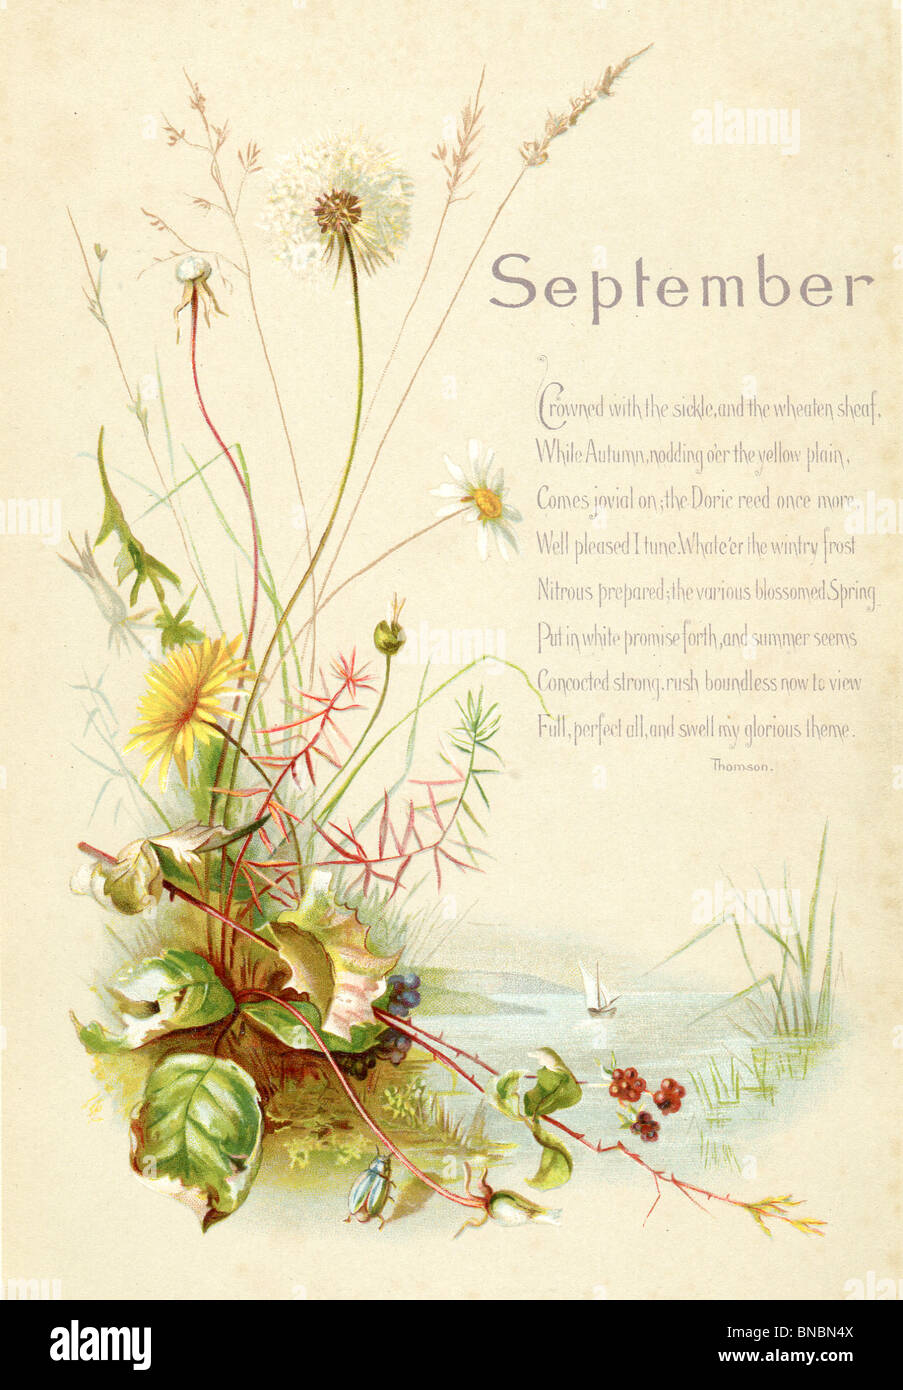 Daisies painting stock photos daisies painting stock images alamy september poem with dandelion and daisies stock image izmirmasajfo